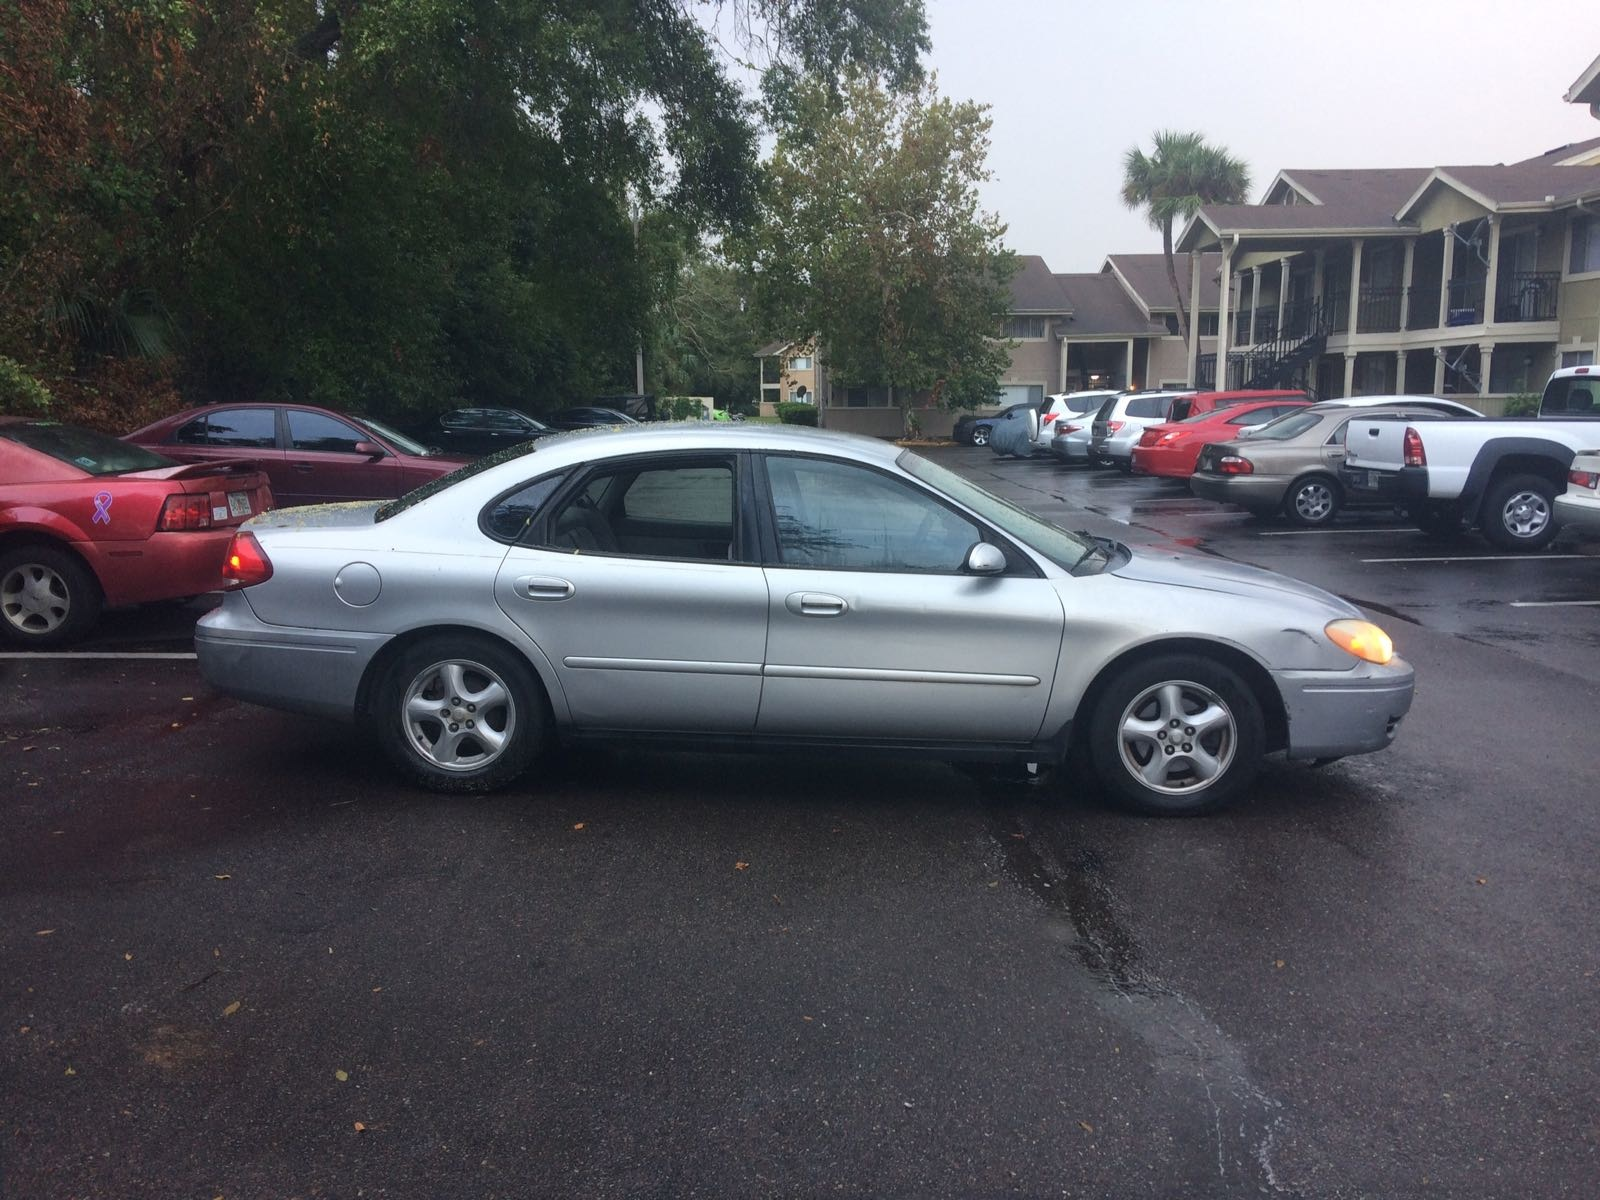 Ford Taurus Questions - Are 2000-2007 ford taurus parts fully